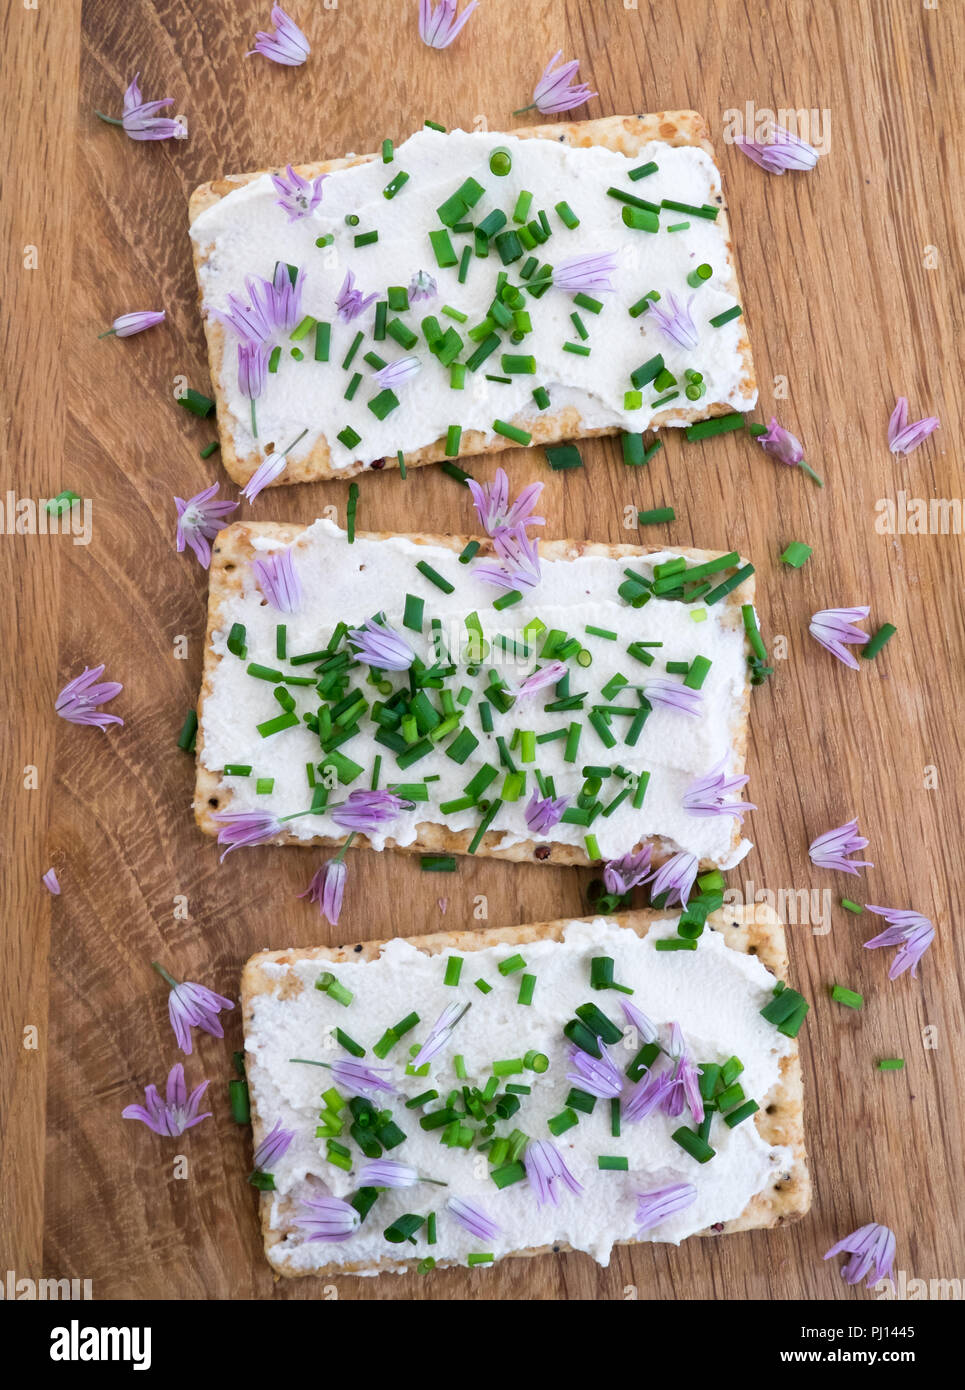 Dairy and lactose-free vegan cream cheese spread made from cashew and macadamia nuts on crackers with fresh chopped chives and edible chive flowers on - Stock Image